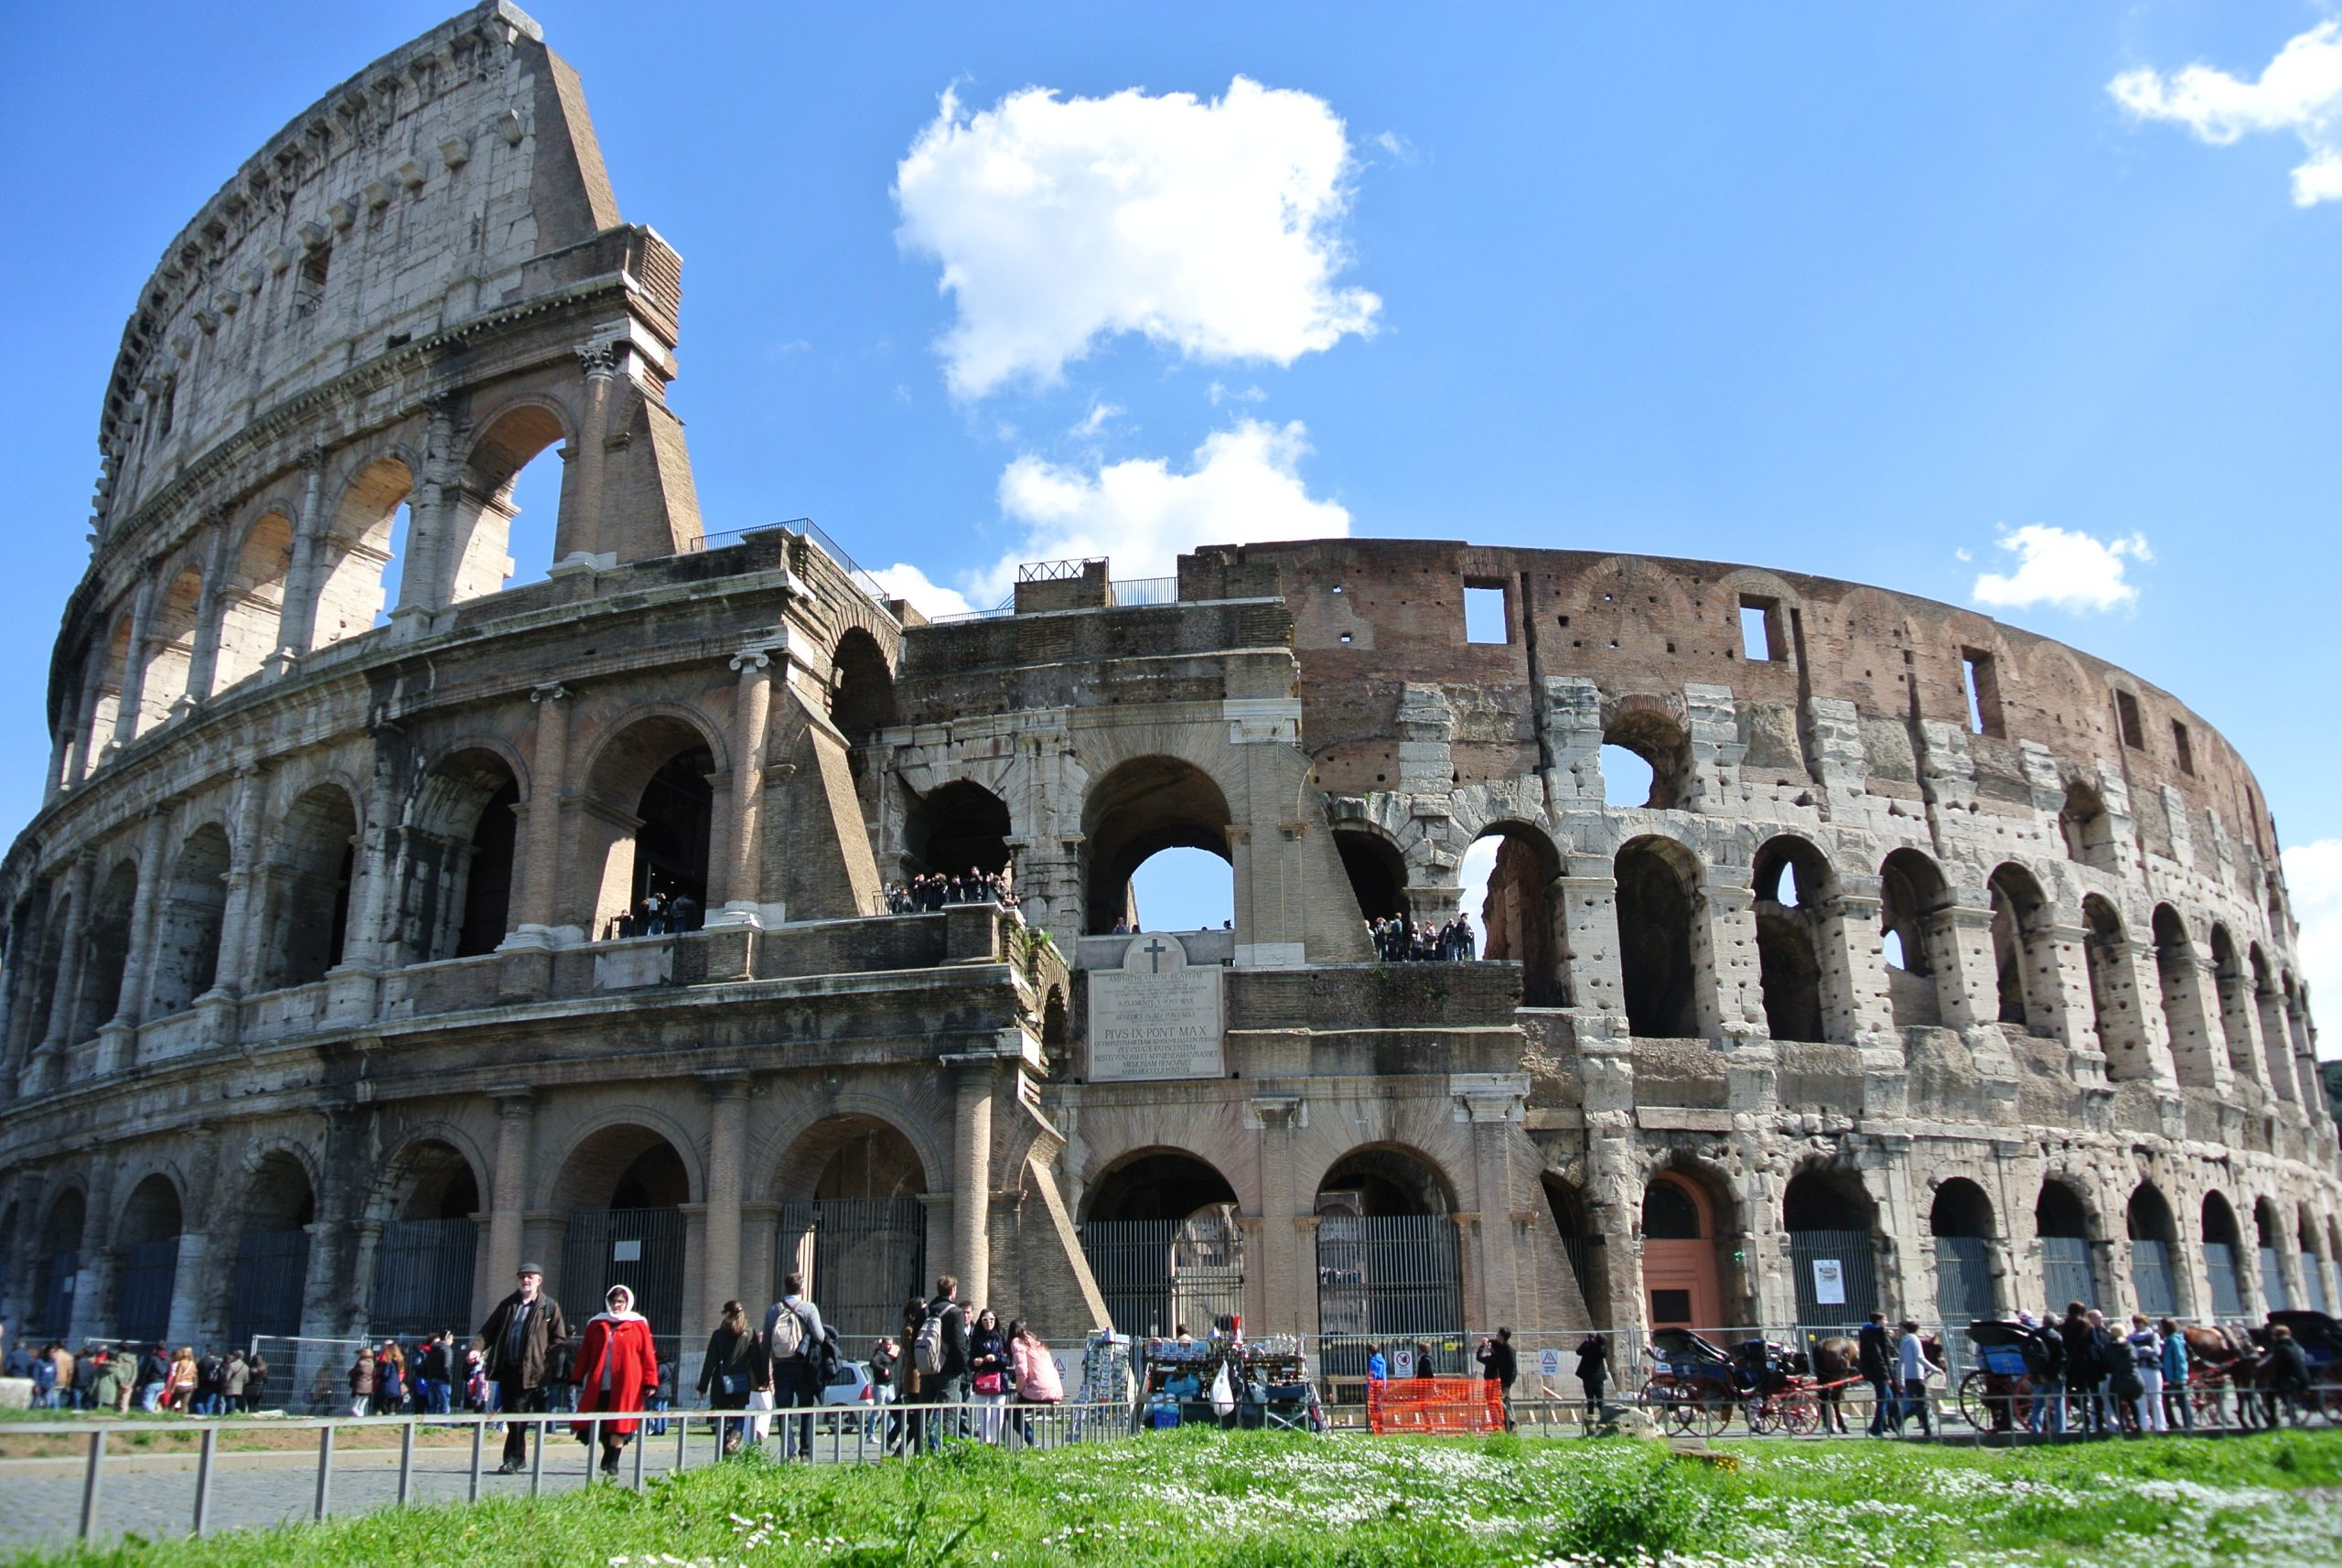 A Complete Guide to Visiting the Colosseum and Palatine Hill in Rome, Italy